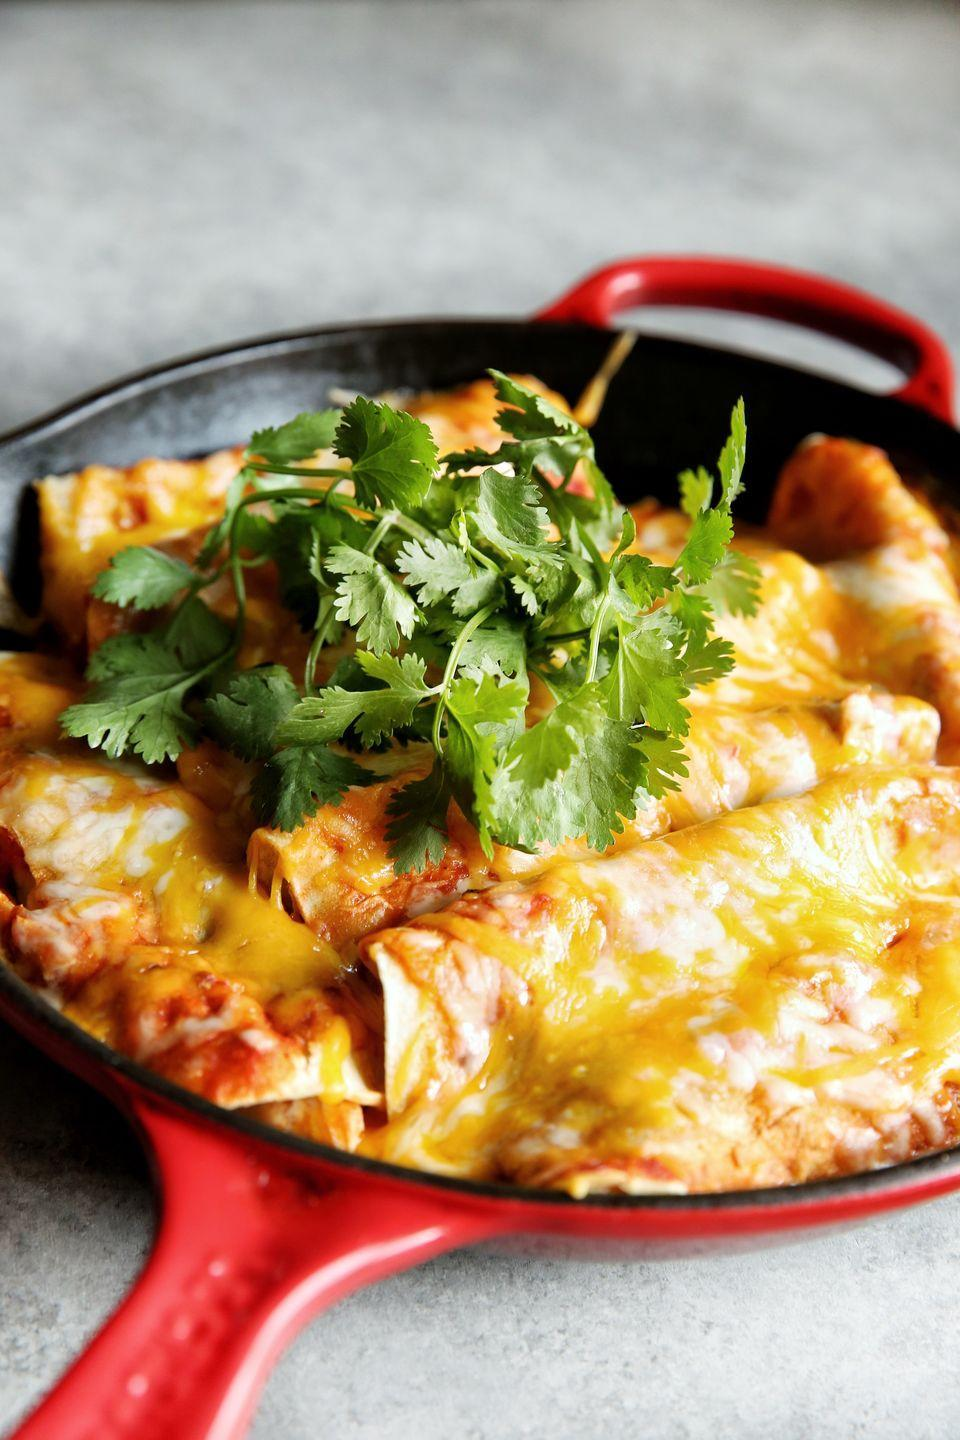 """<p>Make a habit out of these Mexican chicken roll-ups.</p><p>Get the recipe from <a href=""""http://www.delish.com/cooking/recipe-ideas/recipes/a49105/cheesy-chicken-enchiladas-recipe/"""" rel=""""nofollow noopener"""" target=""""_blank"""" data-ylk=""""slk:Delish"""" class=""""link rapid-noclick-resp"""">Delish</a>.</p>"""